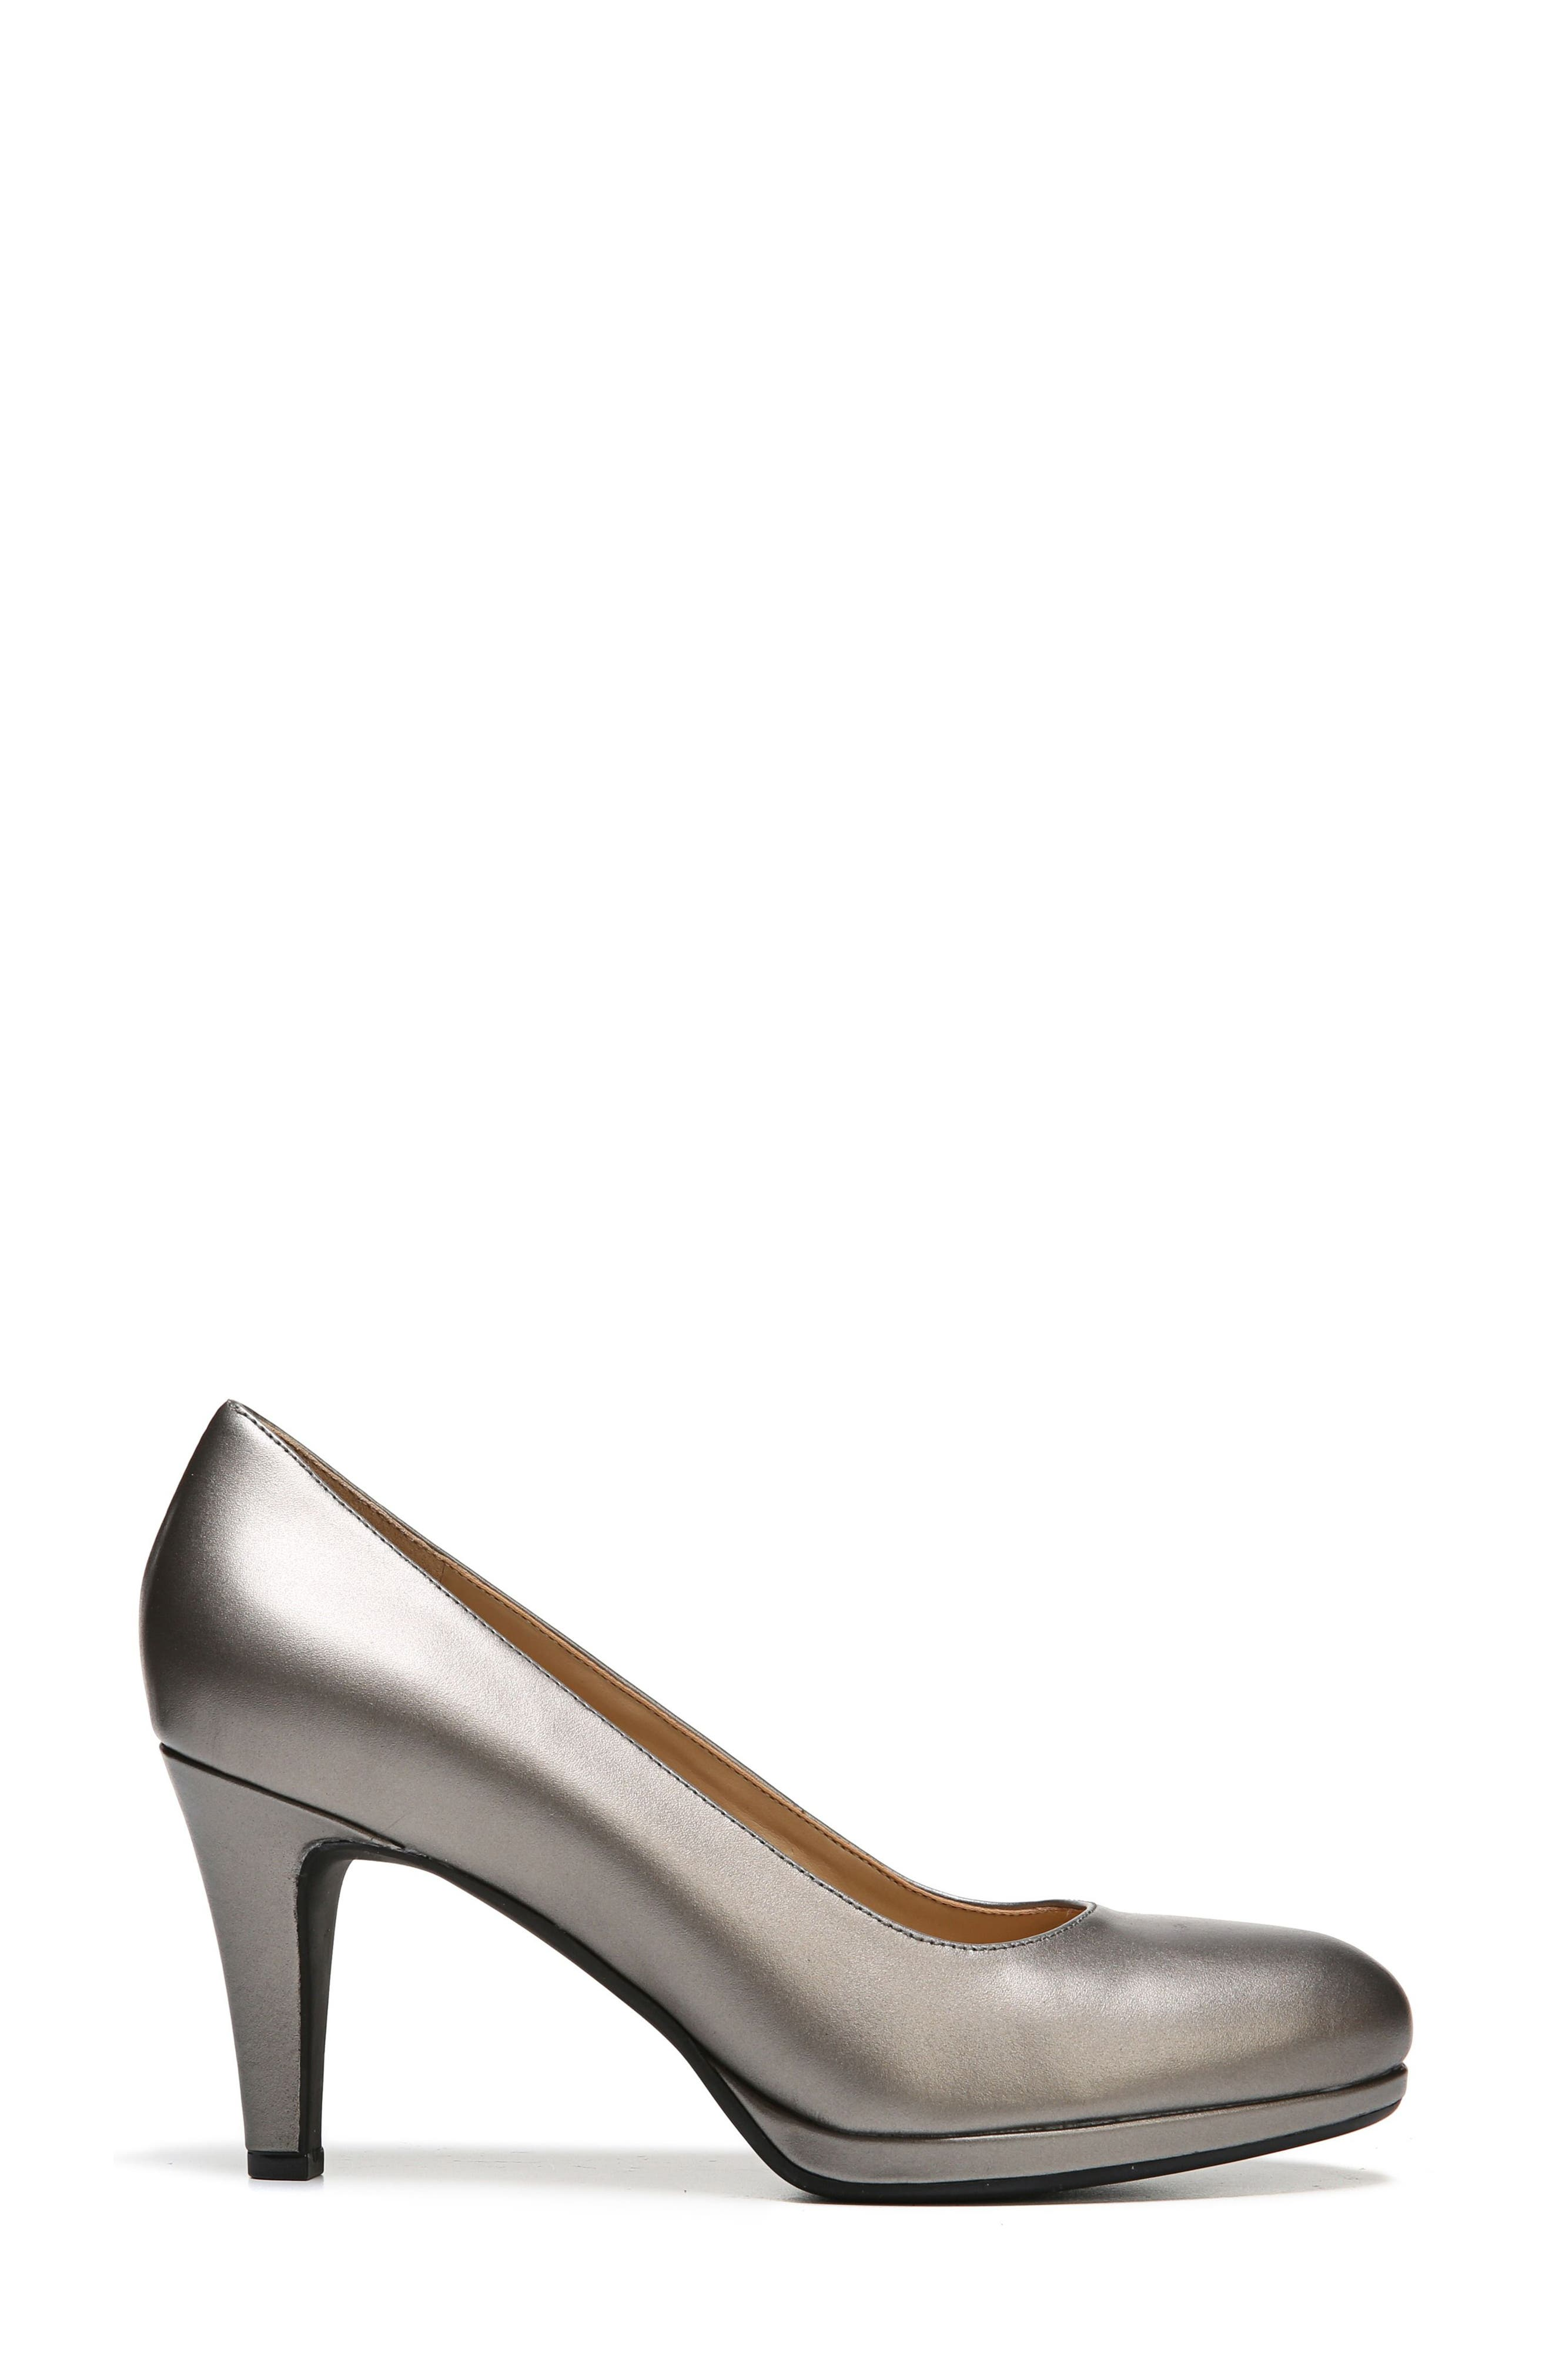 Alternate Image 3  - Naturalizer 'Michelle' Almond Toe Pump (Women)